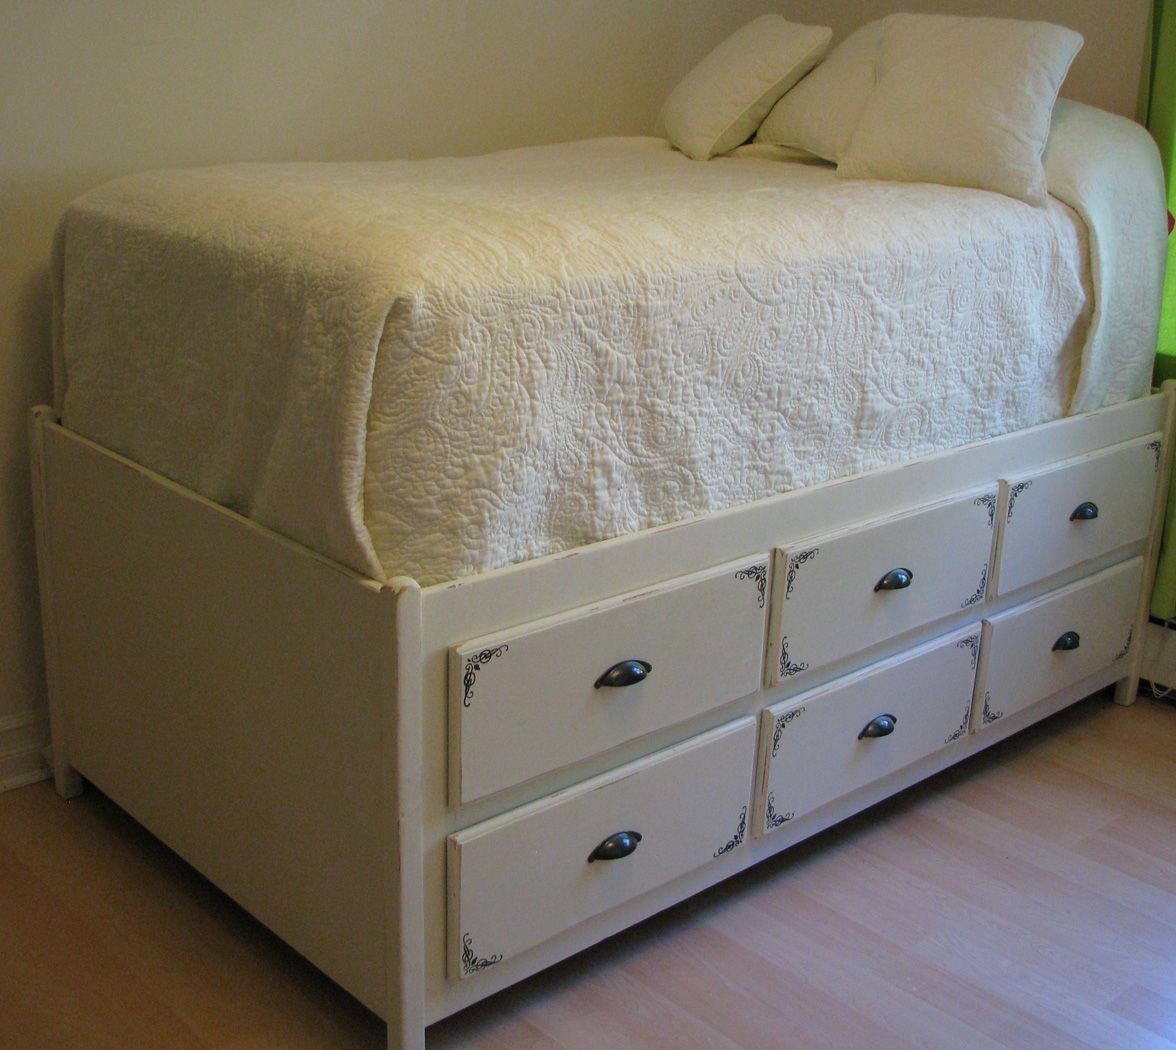 reusing that old dresser bed frame perfect storage solution